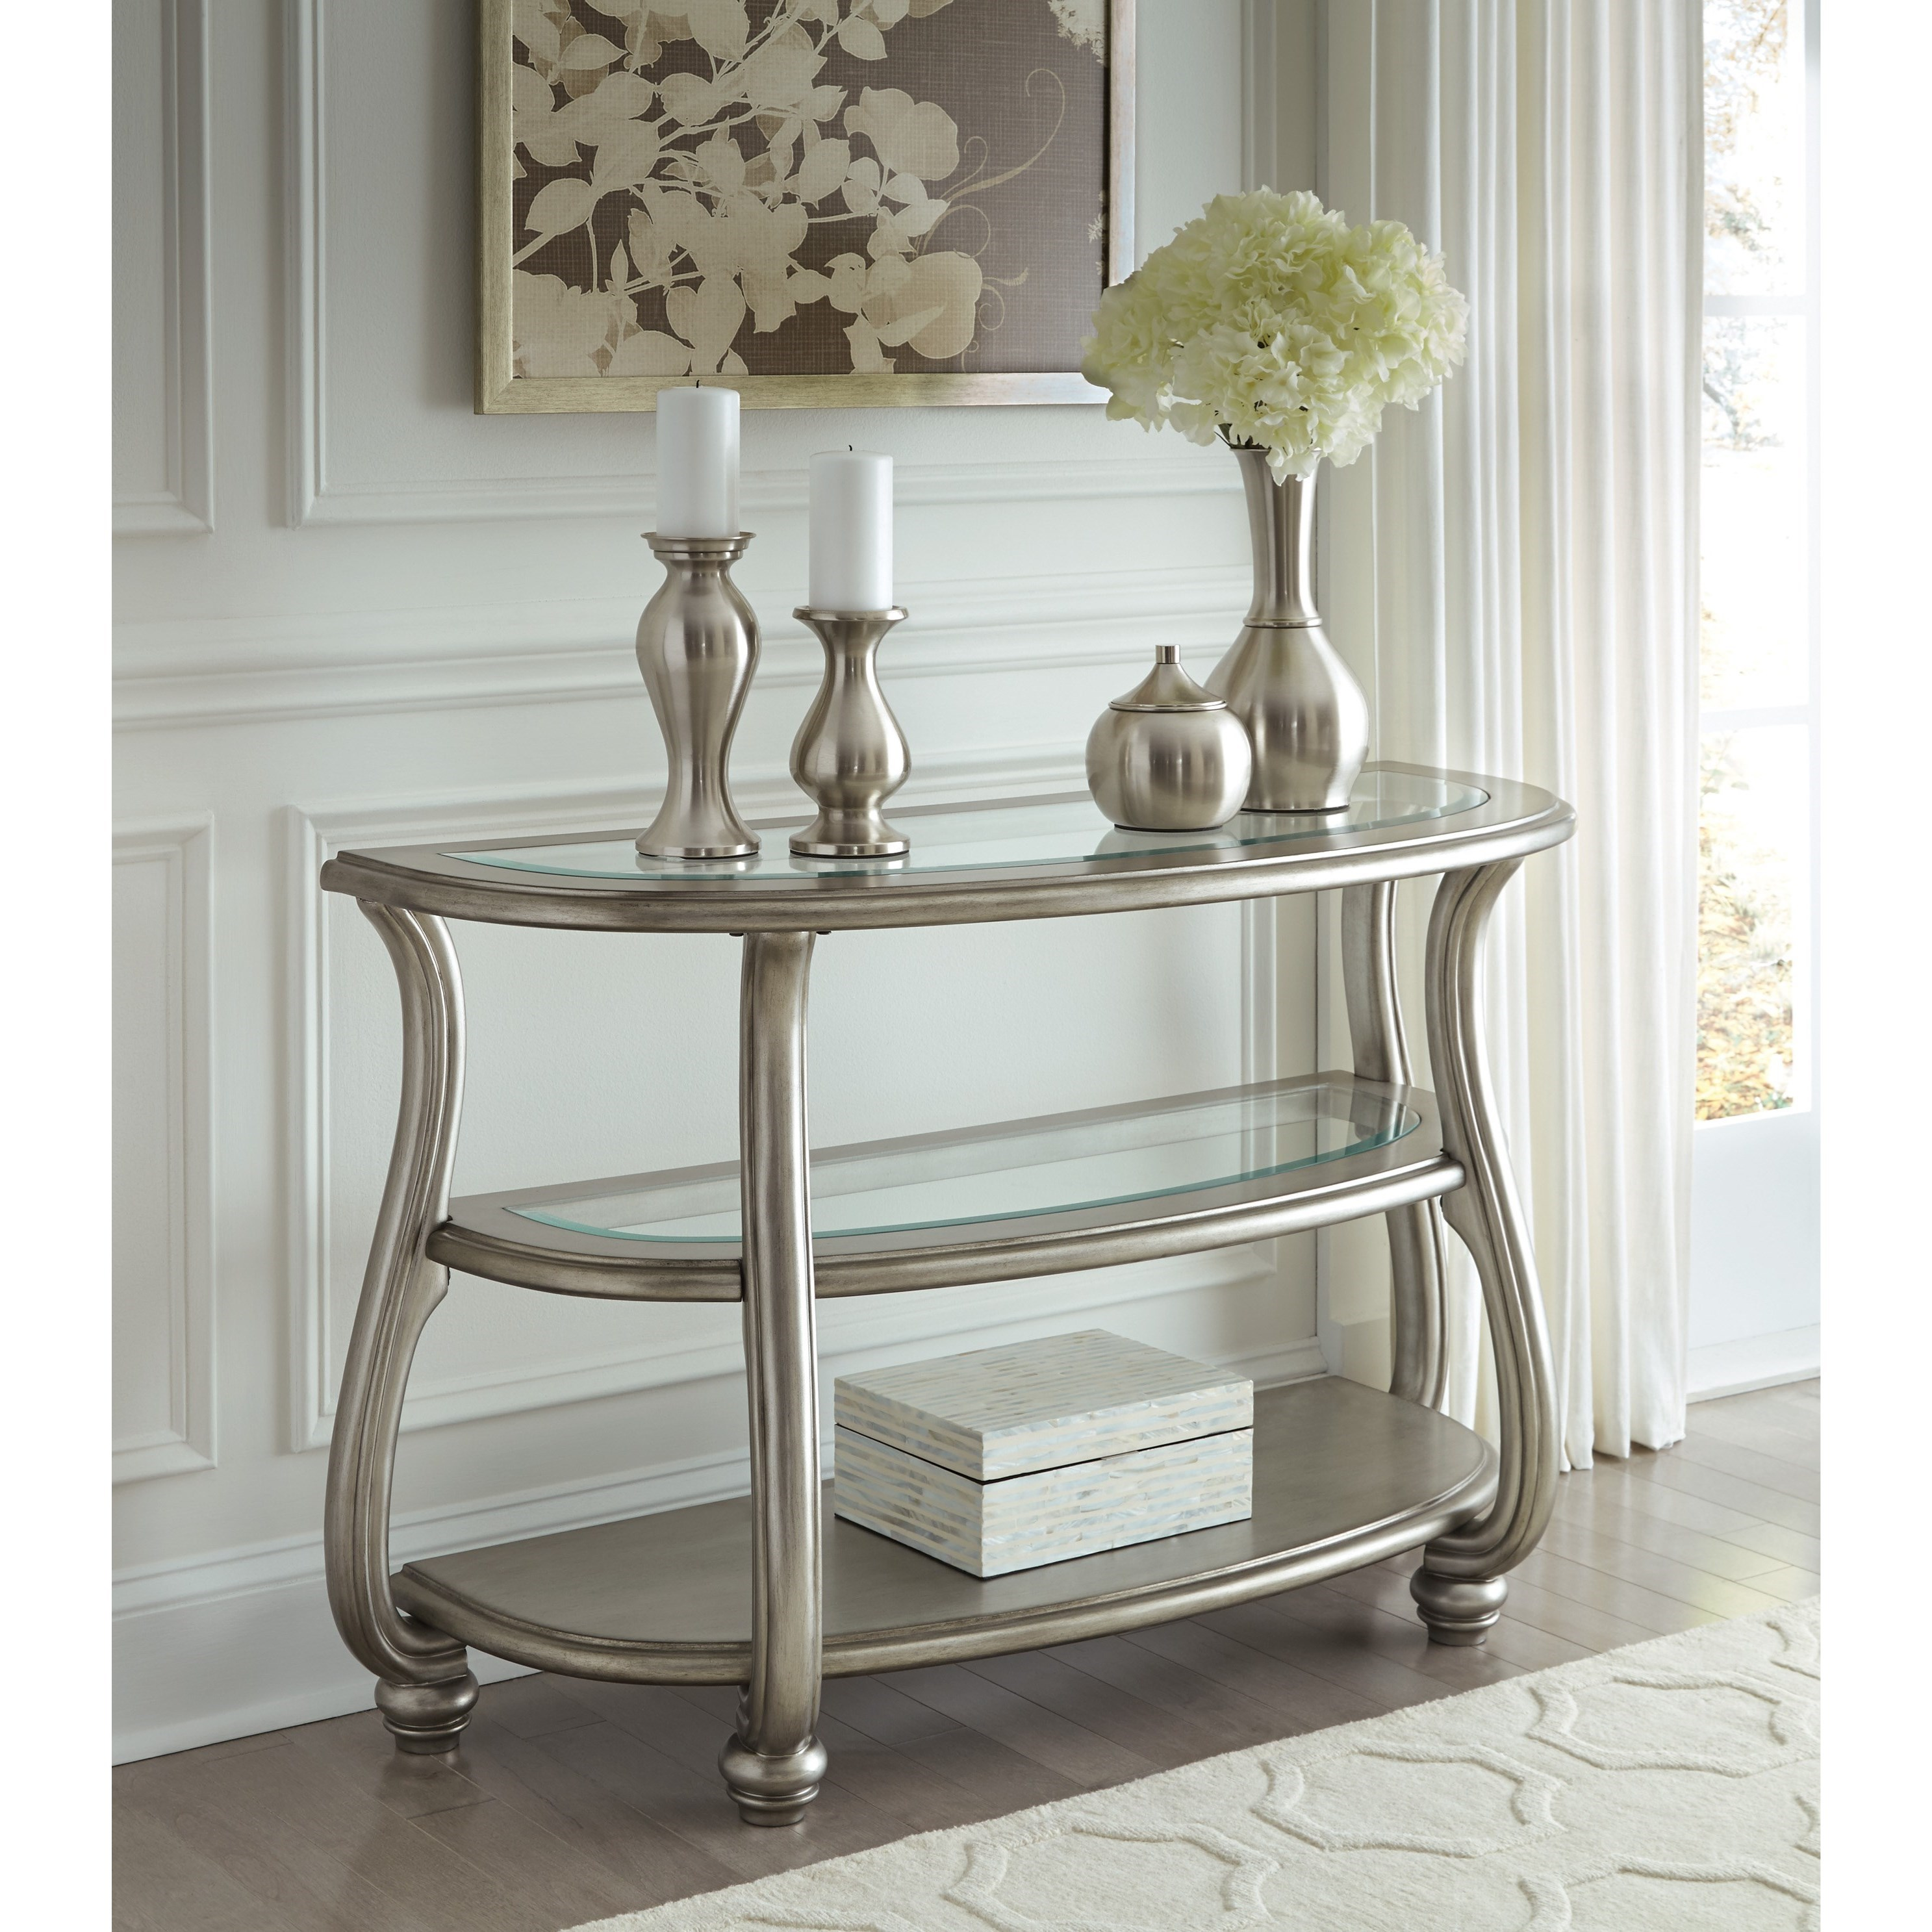 Del Sol As Coralayne T820 4 Demilune Sofa Table In Silver